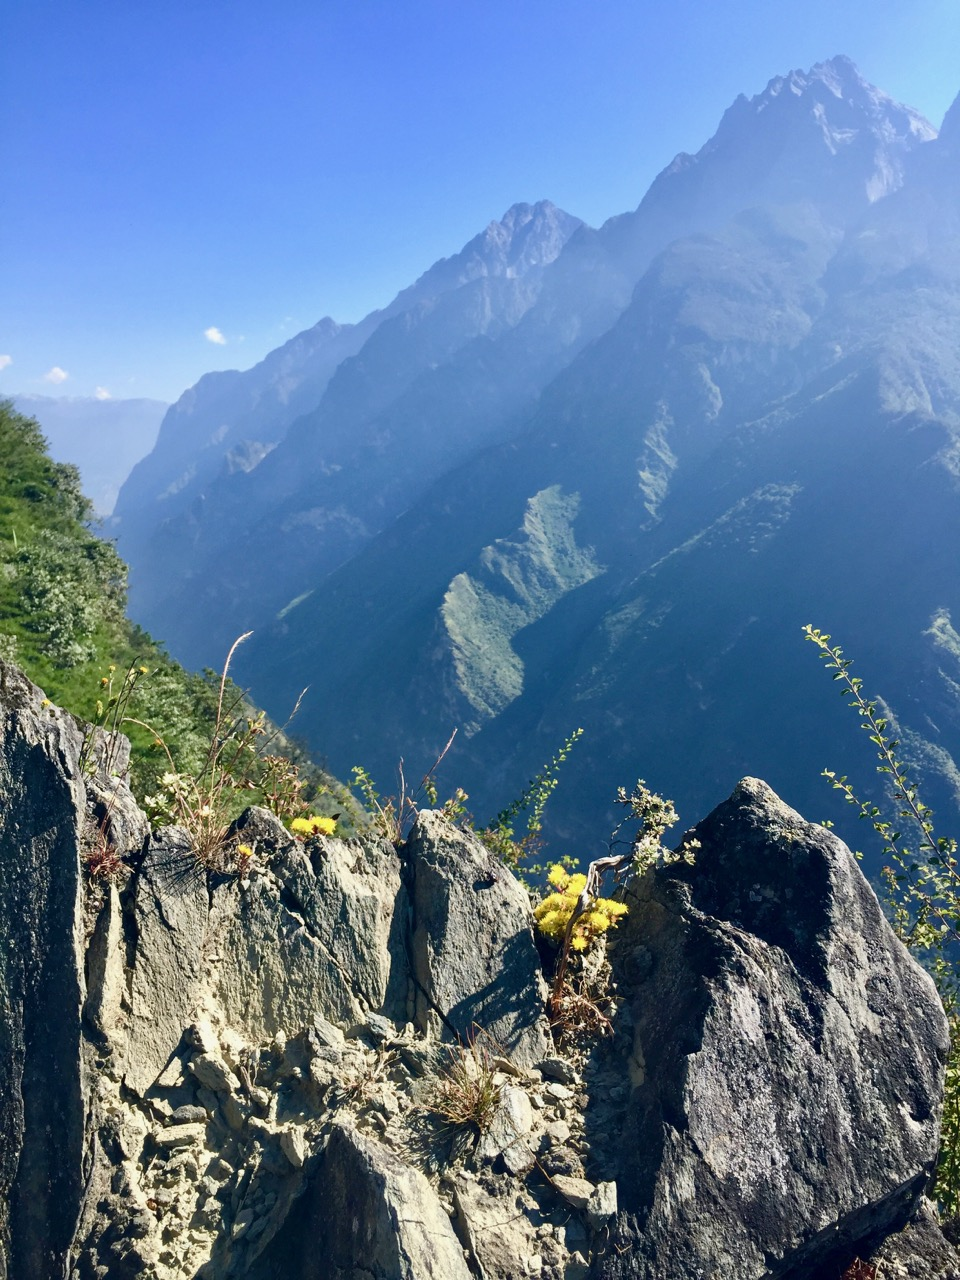 summit-tiger-leaping-gorge